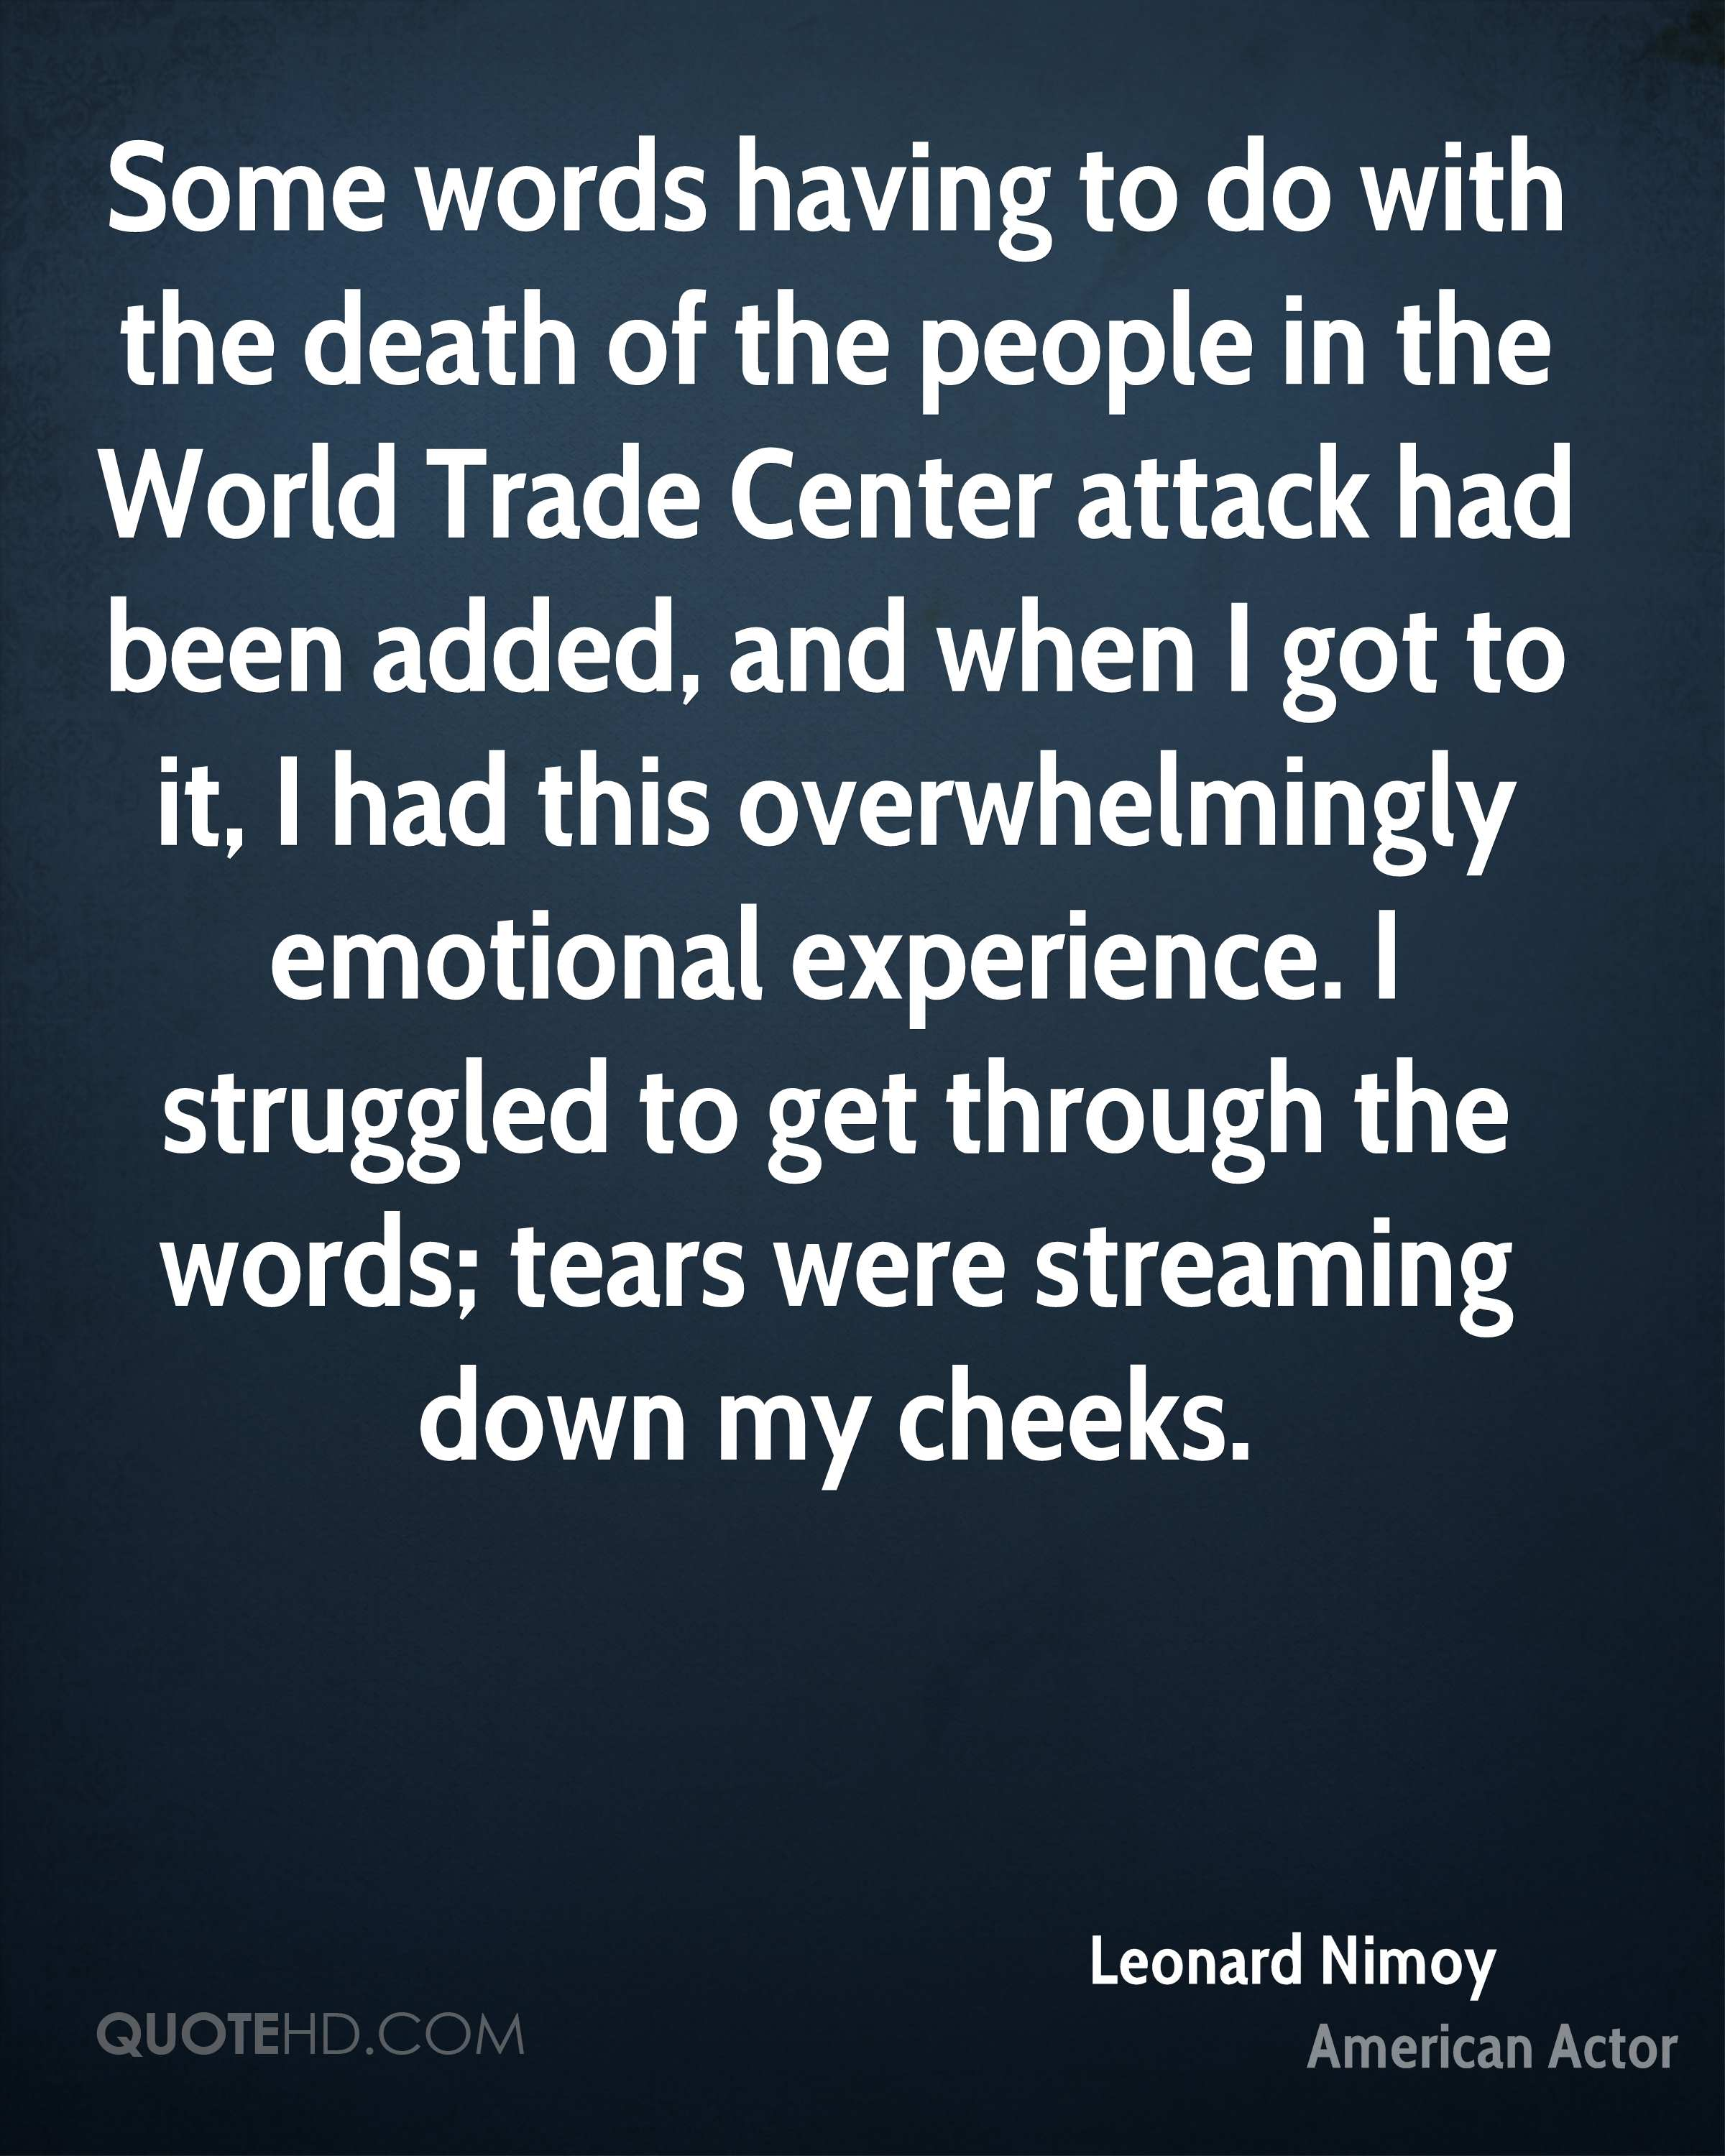 Some words having to do with the death of the people in the World Trade Center attack had been added, and when I got to it, I had this overwhelmingly emotional experience. I struggled to get through the words; tears were streaming down my cheeks.